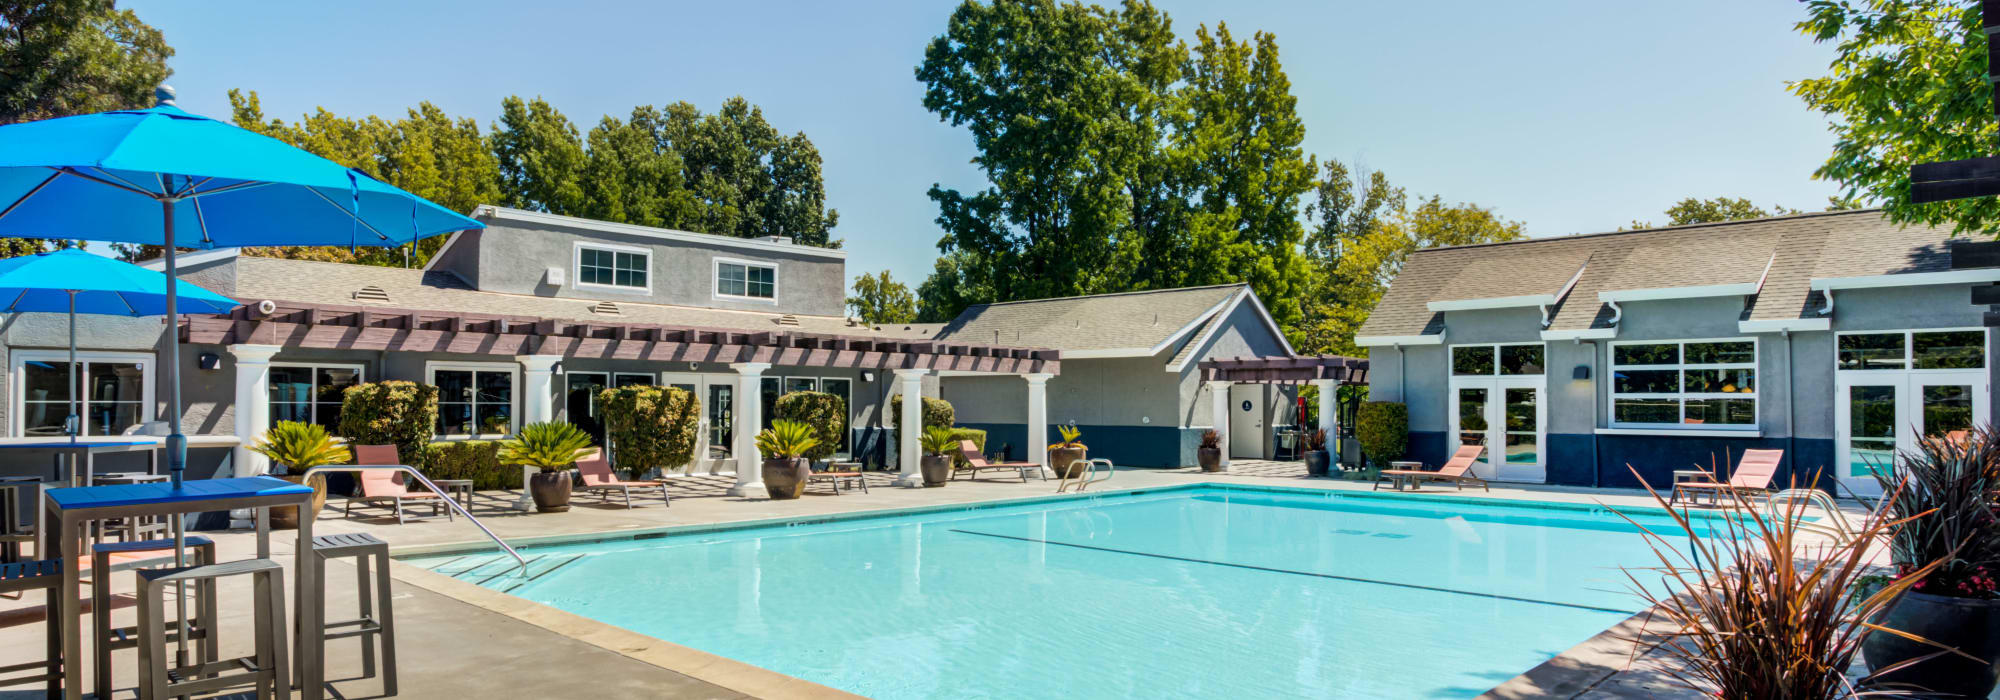 Apply to The Woodlands Apartments in Sacramento, California